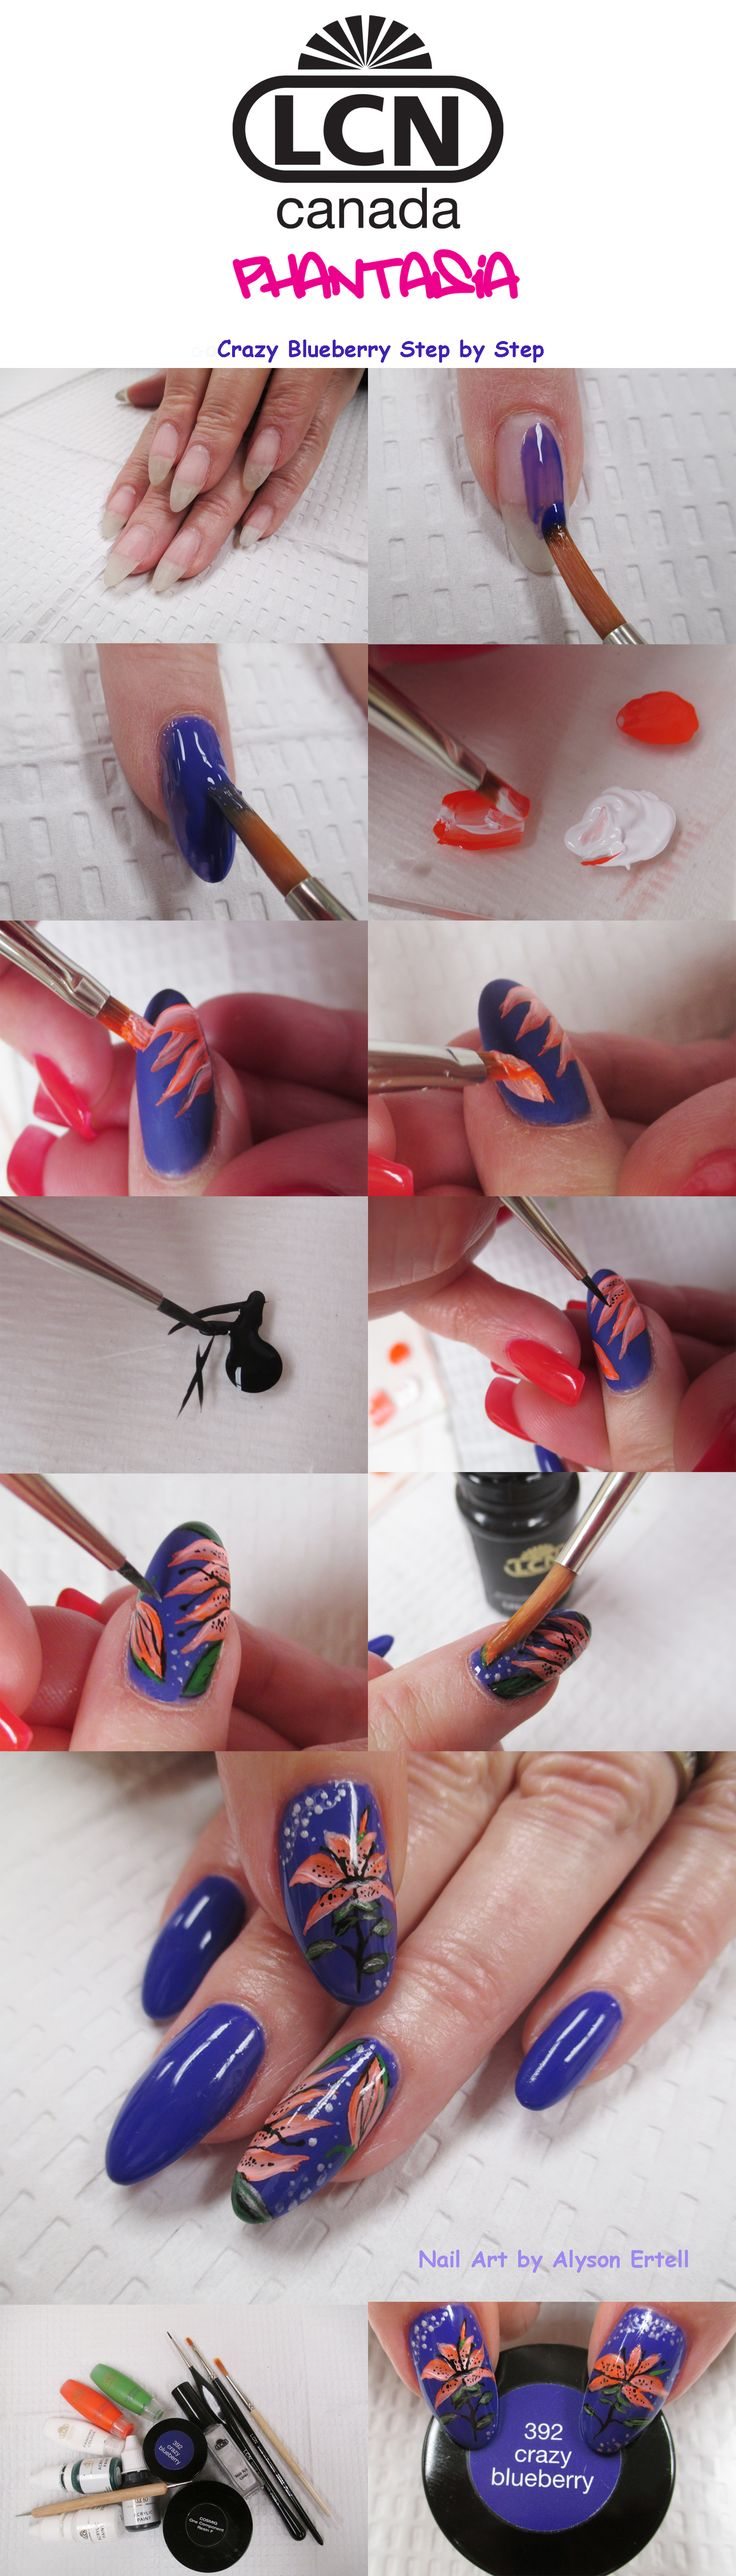 245 best LCN Gel Nails with Nail Art images on Pinterest | Gel nail ...